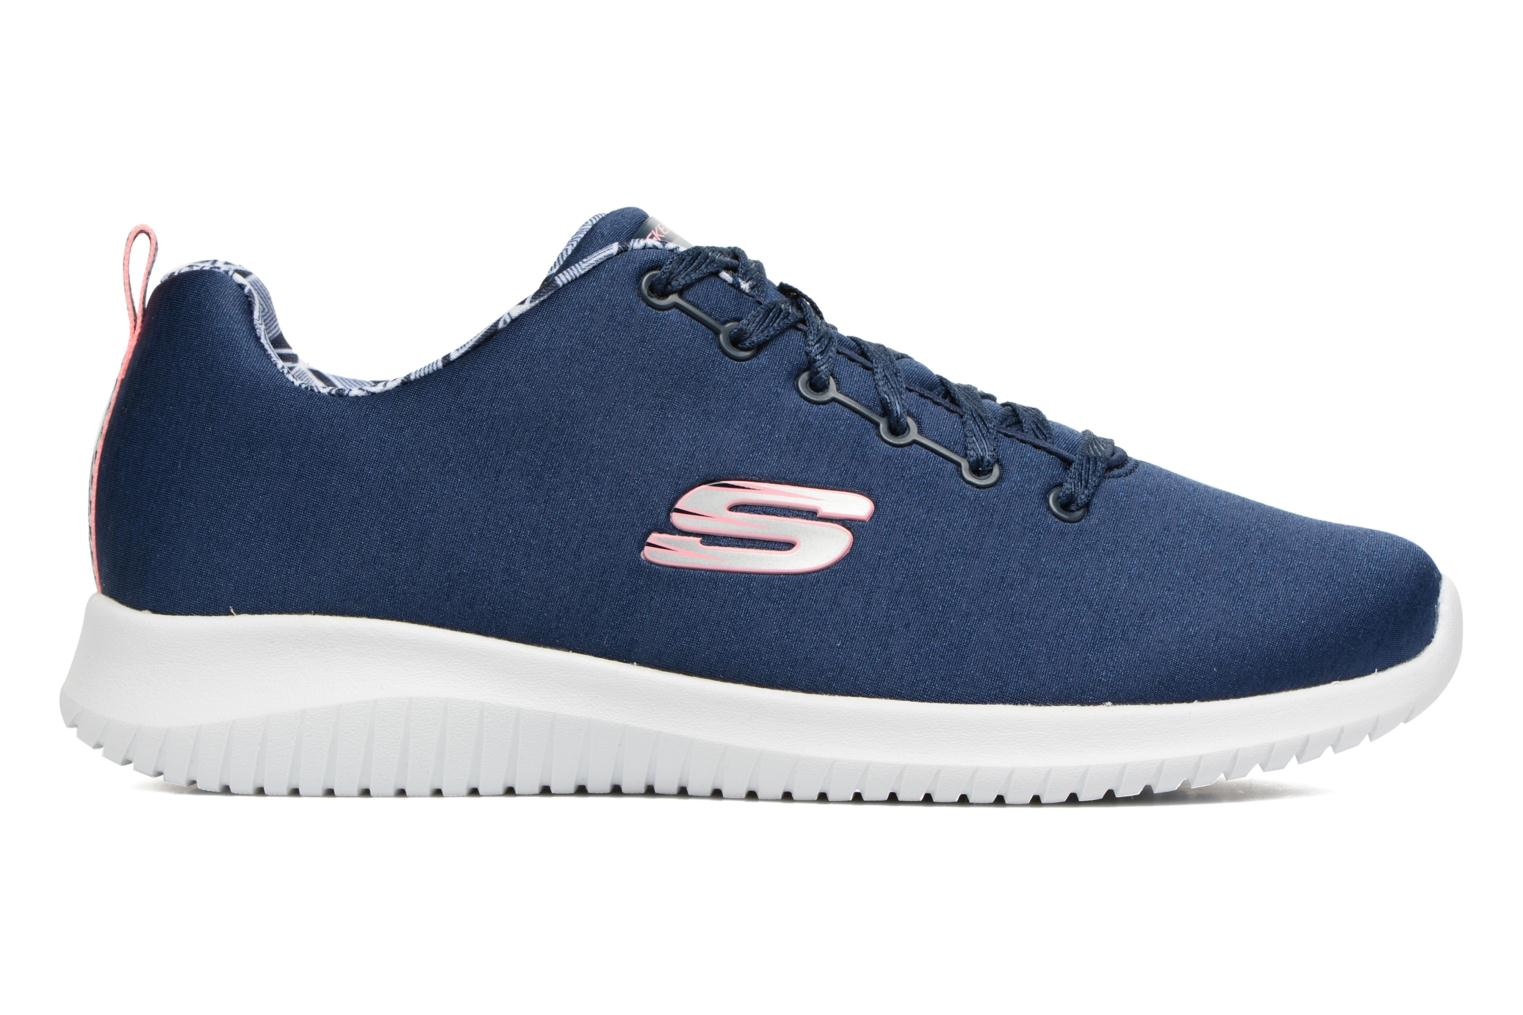 Skechers Ultra Flex First Choice (Bleu) Chaussures